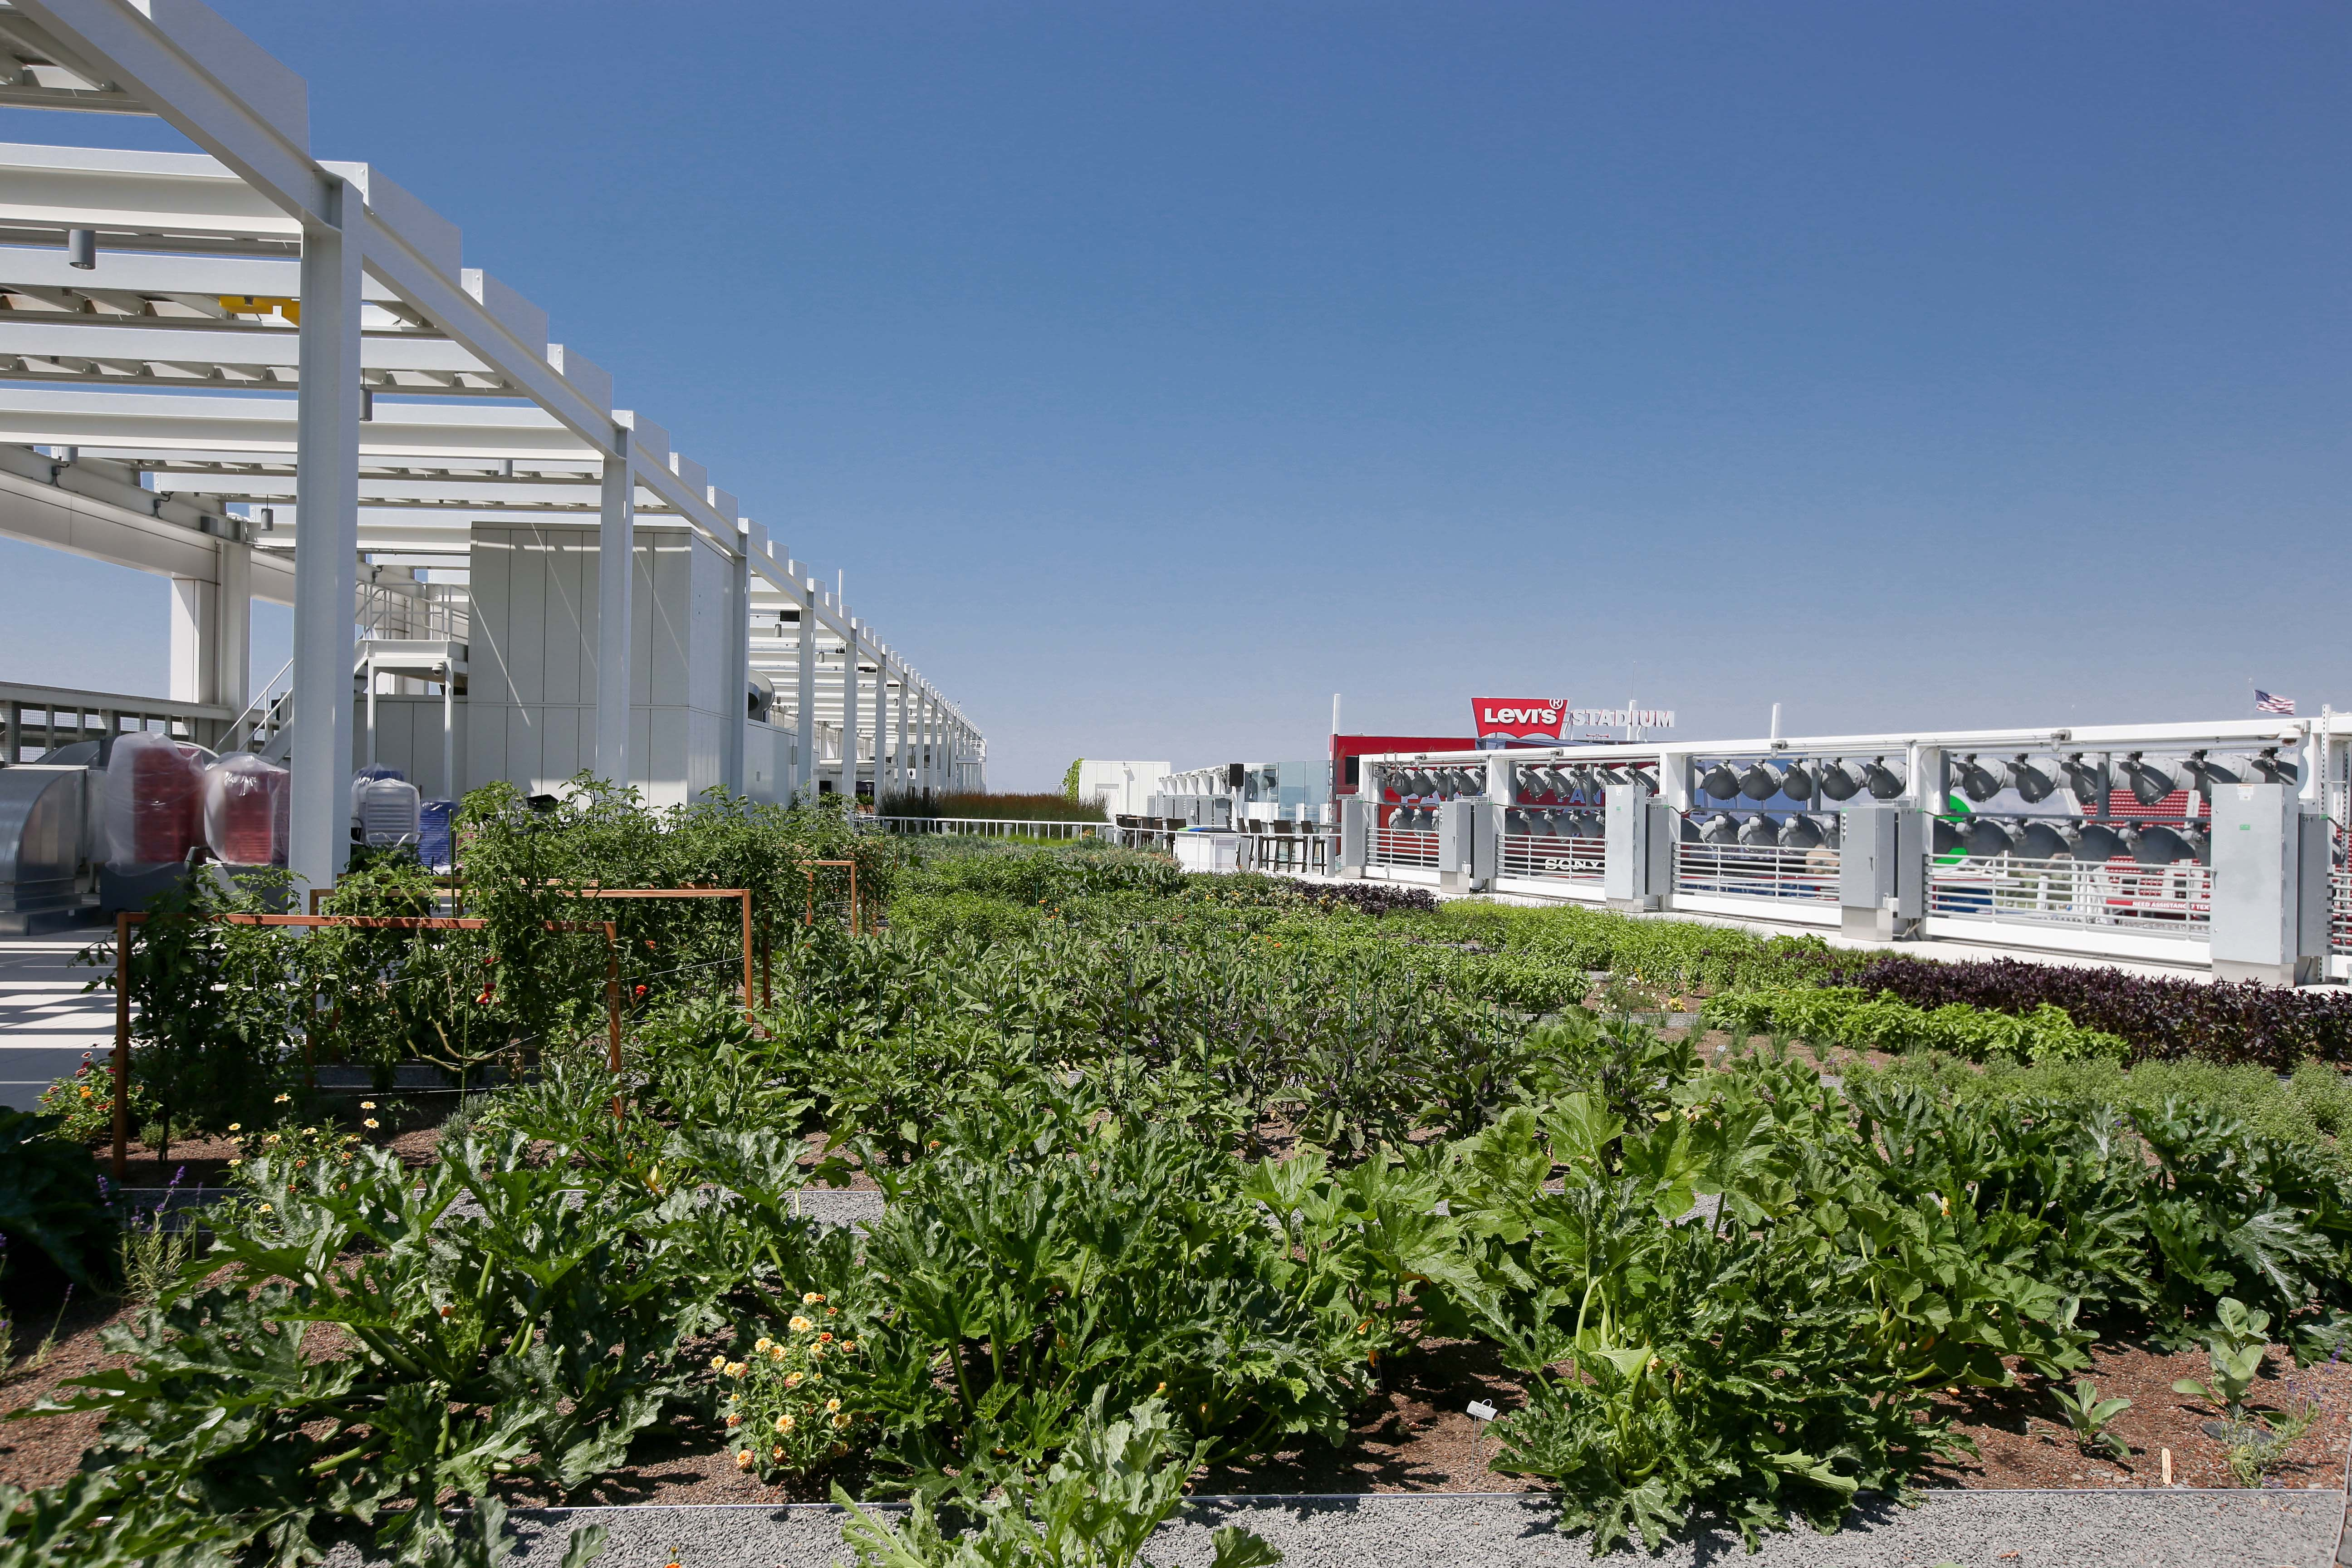 Levis Stadium Achieves Leed Gold Certification For Operations And